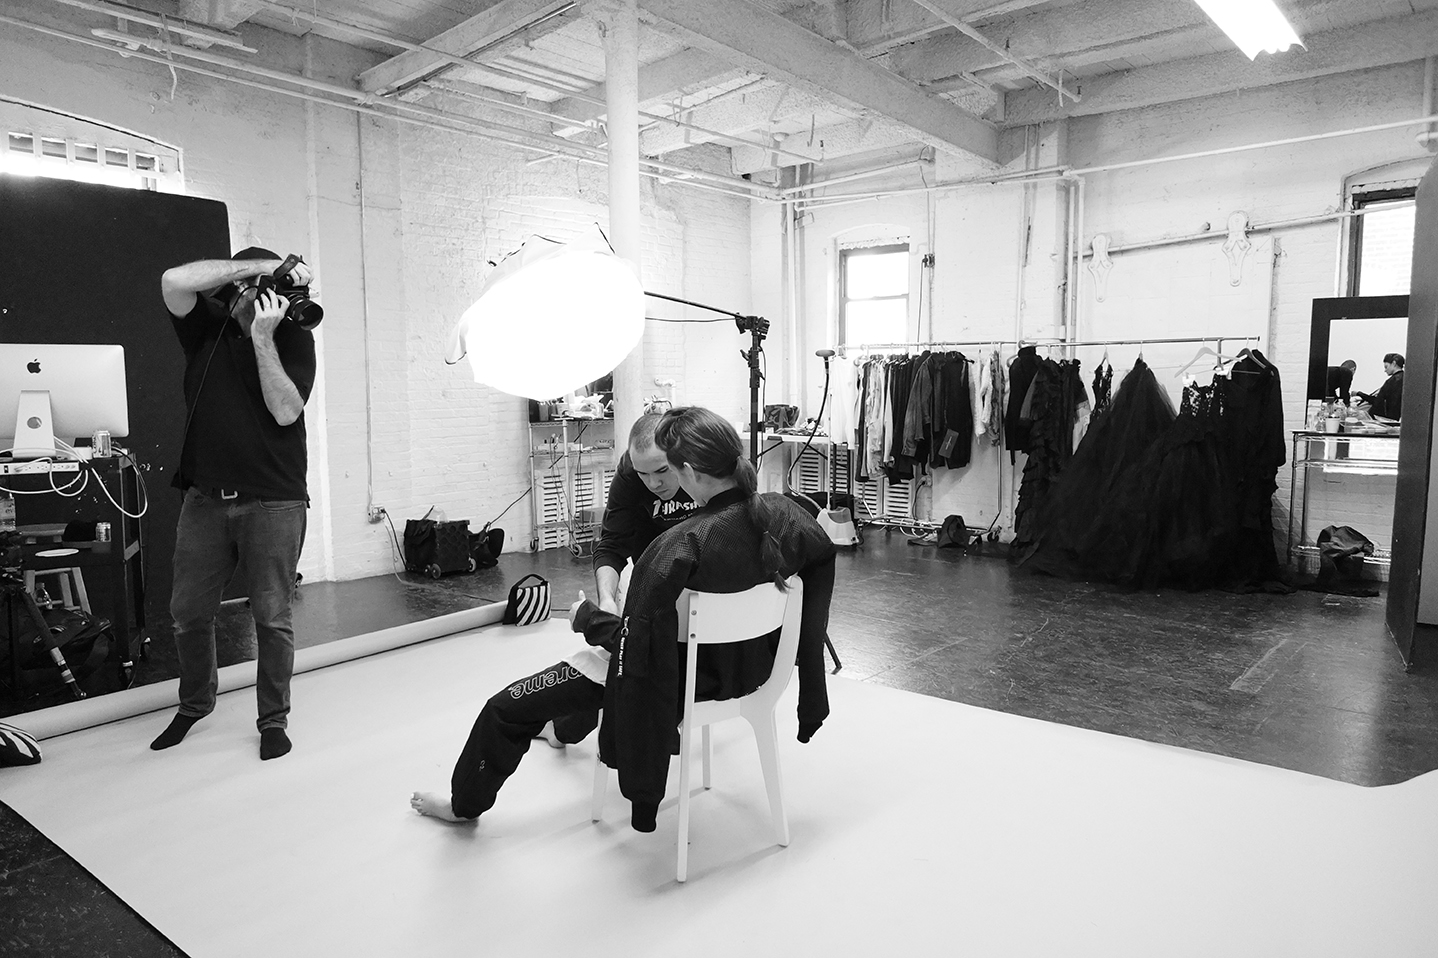 Grayson-Hoffman-Behind-The-Scenes-New-York-Studio-IMG-Women-Models-LIC-Studio-Long-Isalnd-City-Fashion-Images-On-Set-7